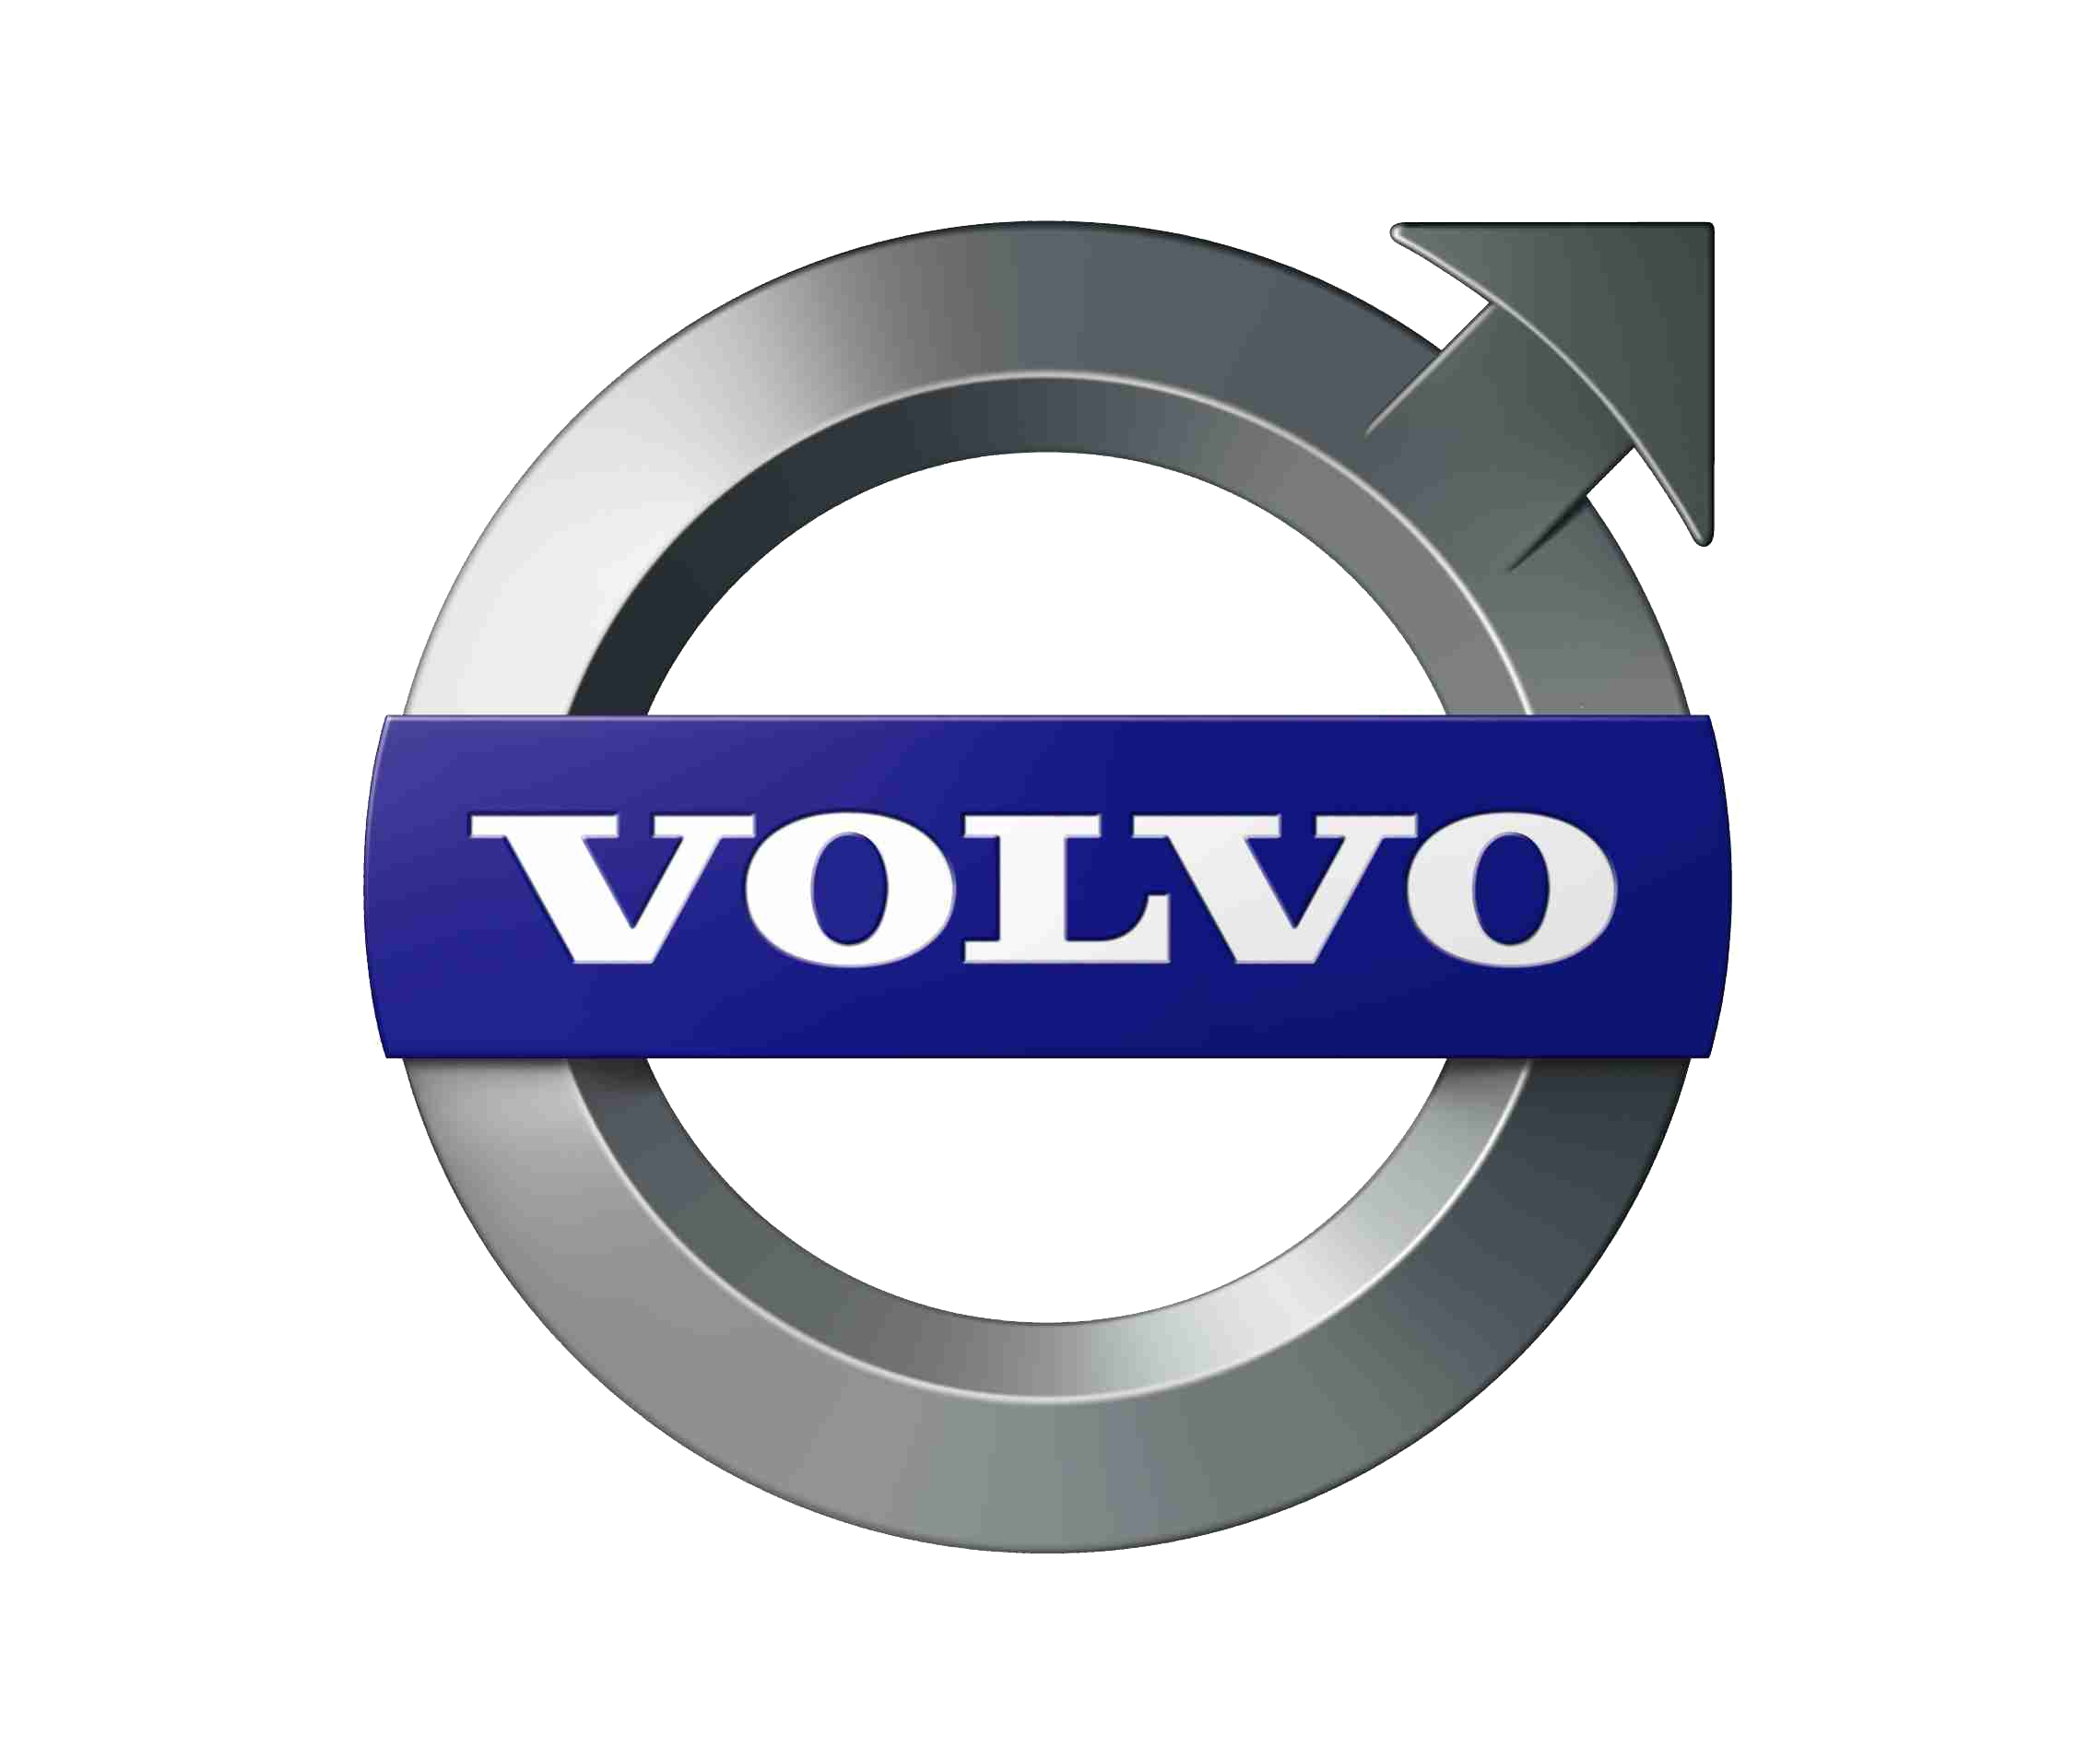 Brands png images volvo. Clipart cars logo